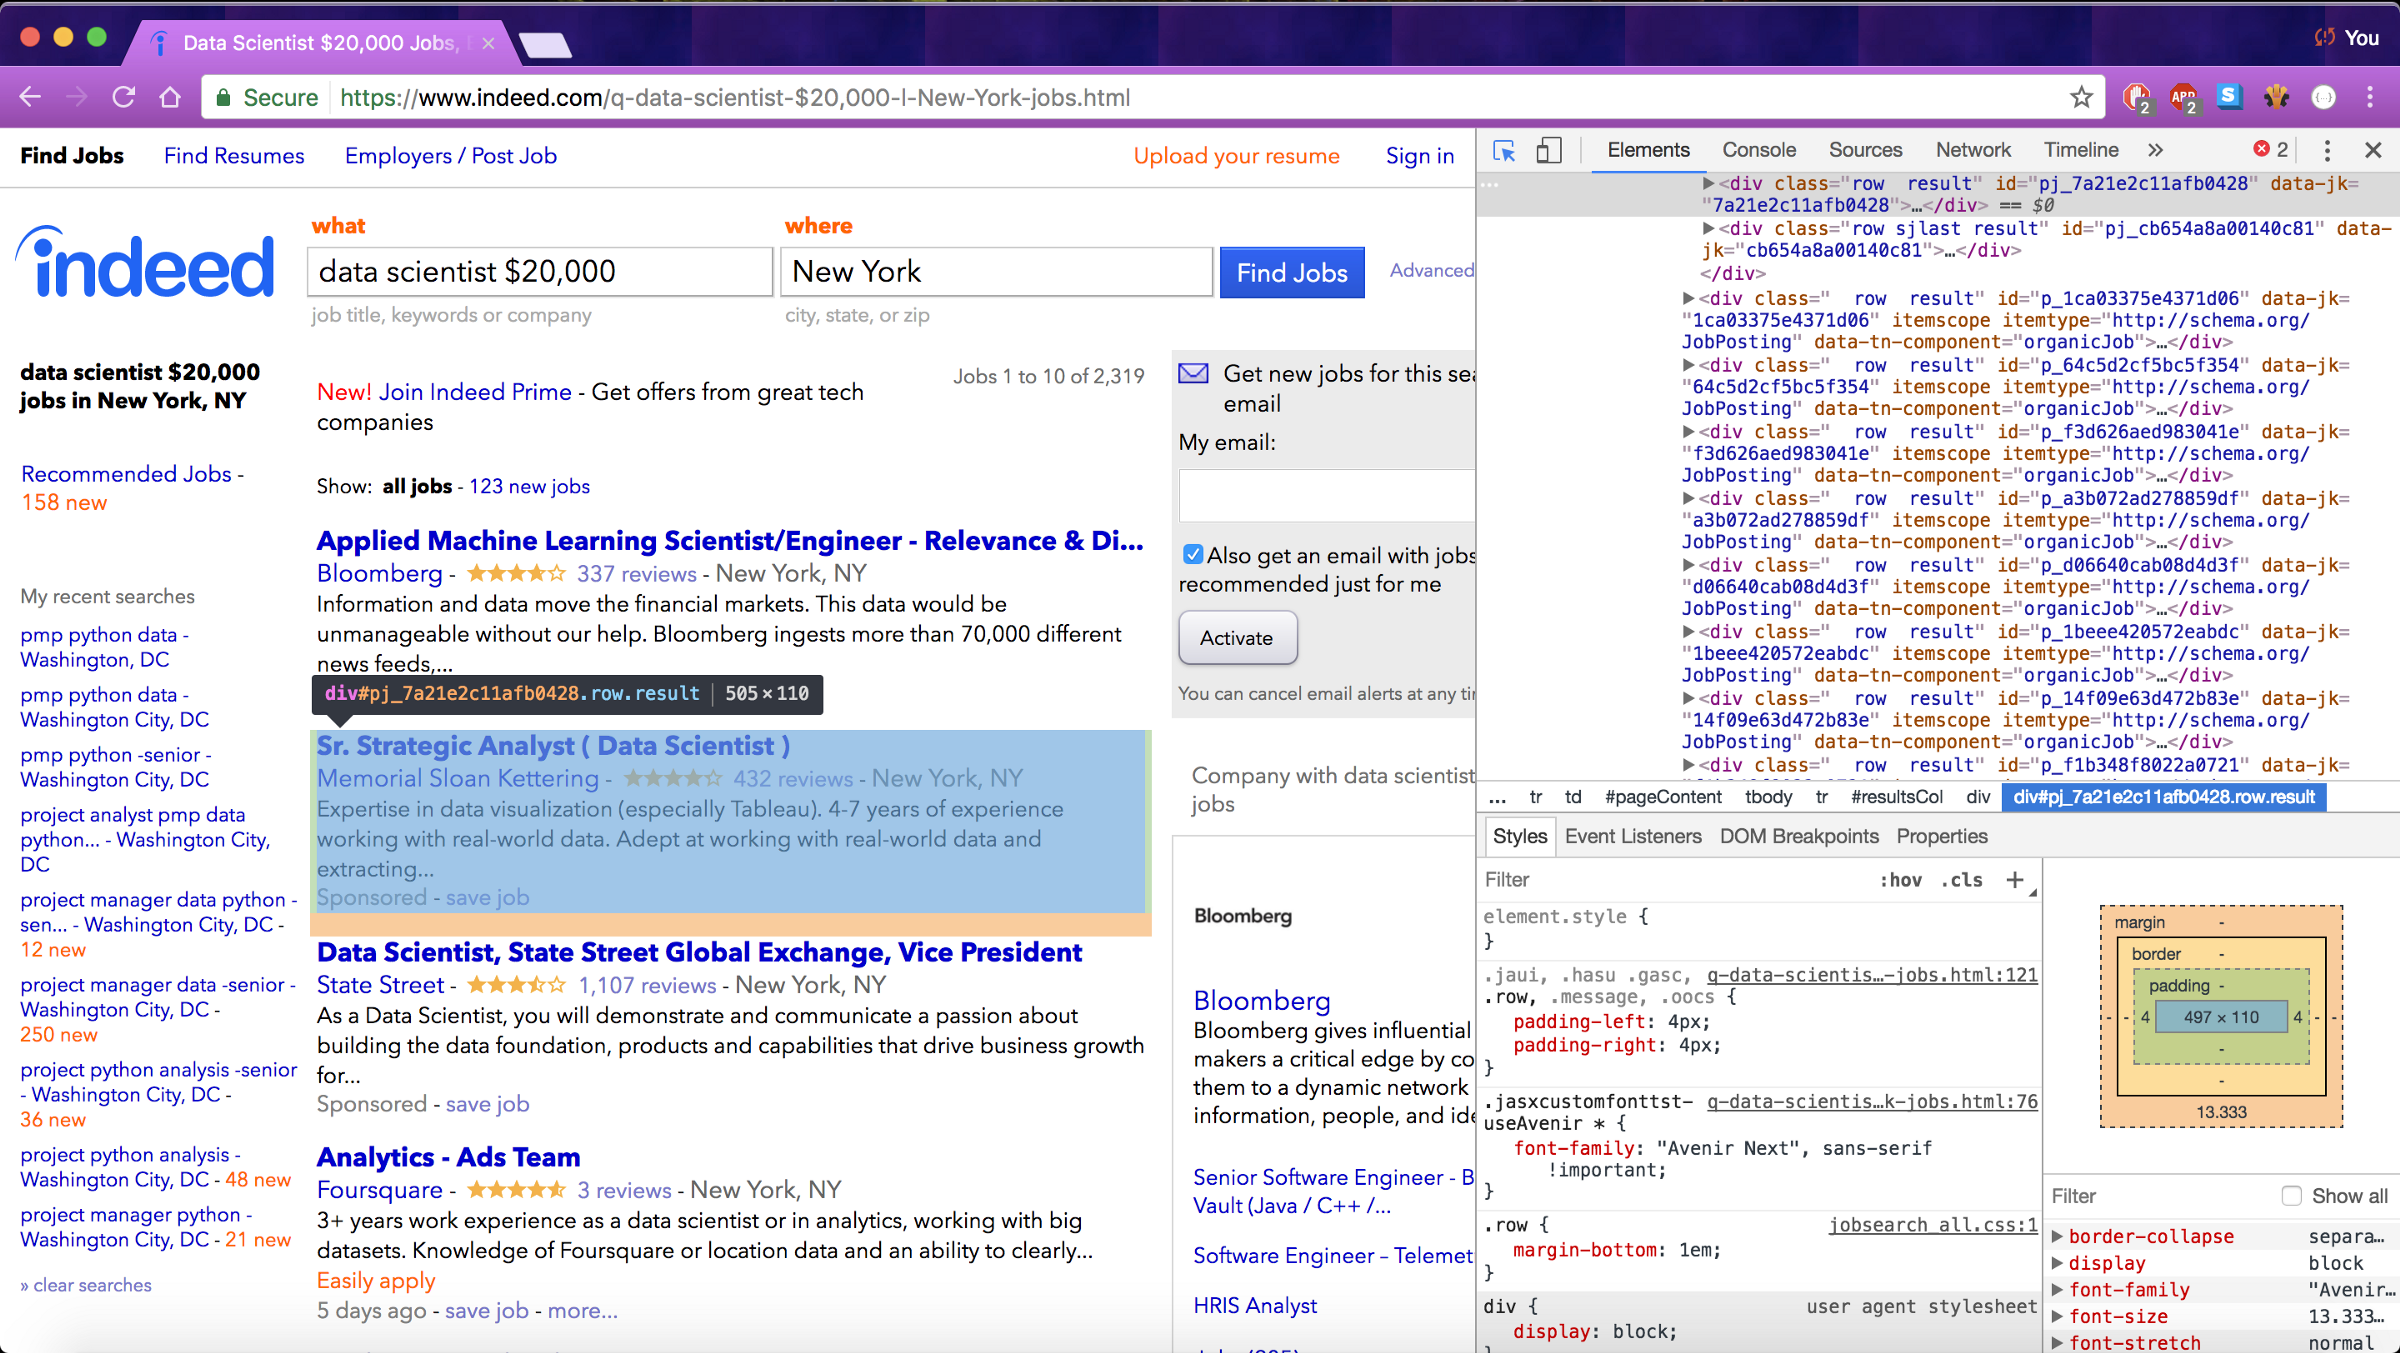 web scraping job postings from indeed \u2013 michael salmon \u2013 mediumin the screen show above, i\u0027ve cursored over one of the job postings to show how the entire job\u0027s contents is held within a \u003cdiv\u003e tag, with attributes